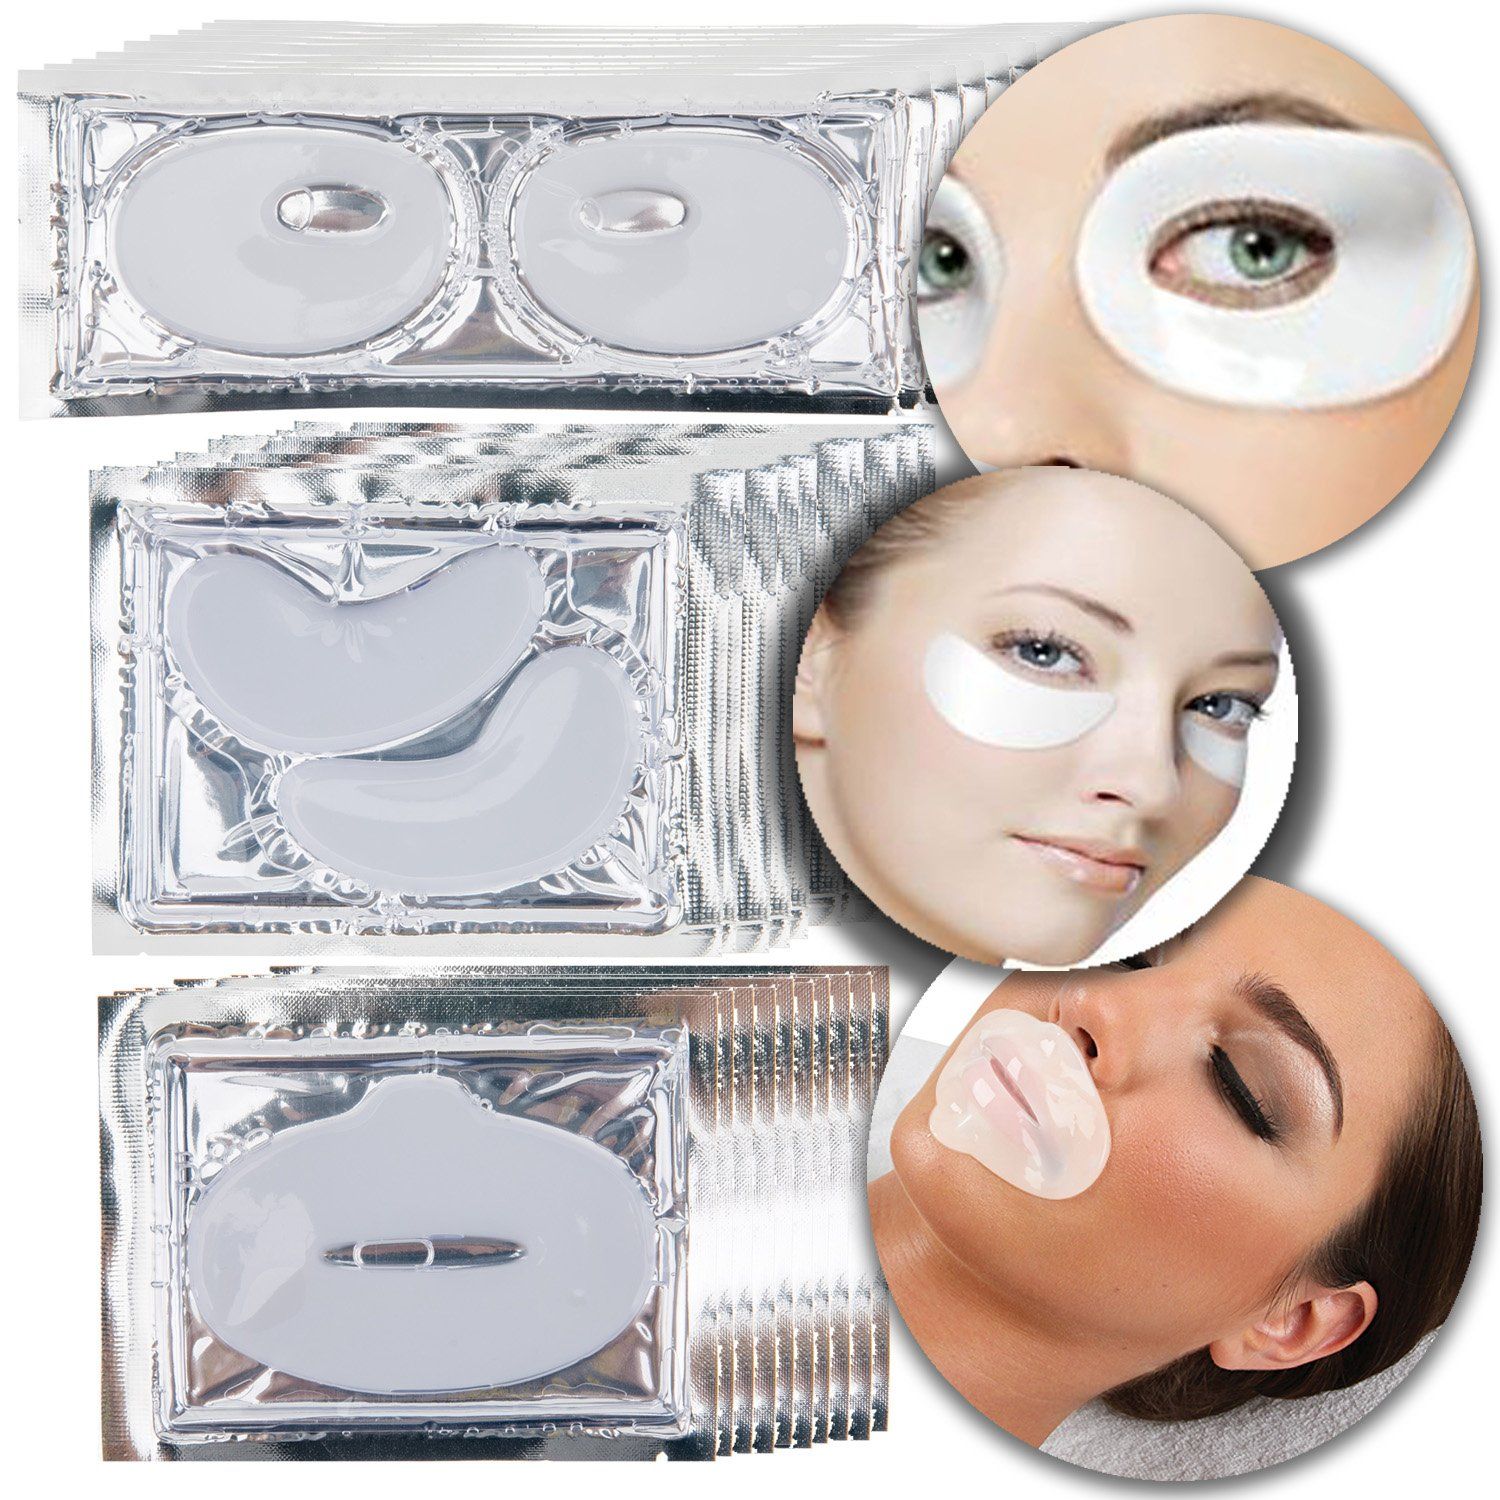 Anti Aging Treatments Set Kit of Milk White Collagen Gel Crystal Masks Patches Sheets for Lips, Eyes and Eyelids Fine Lines and Wrinkles Removal, Moisturizing Hydration, Skin Firming and Nourishing VAGA